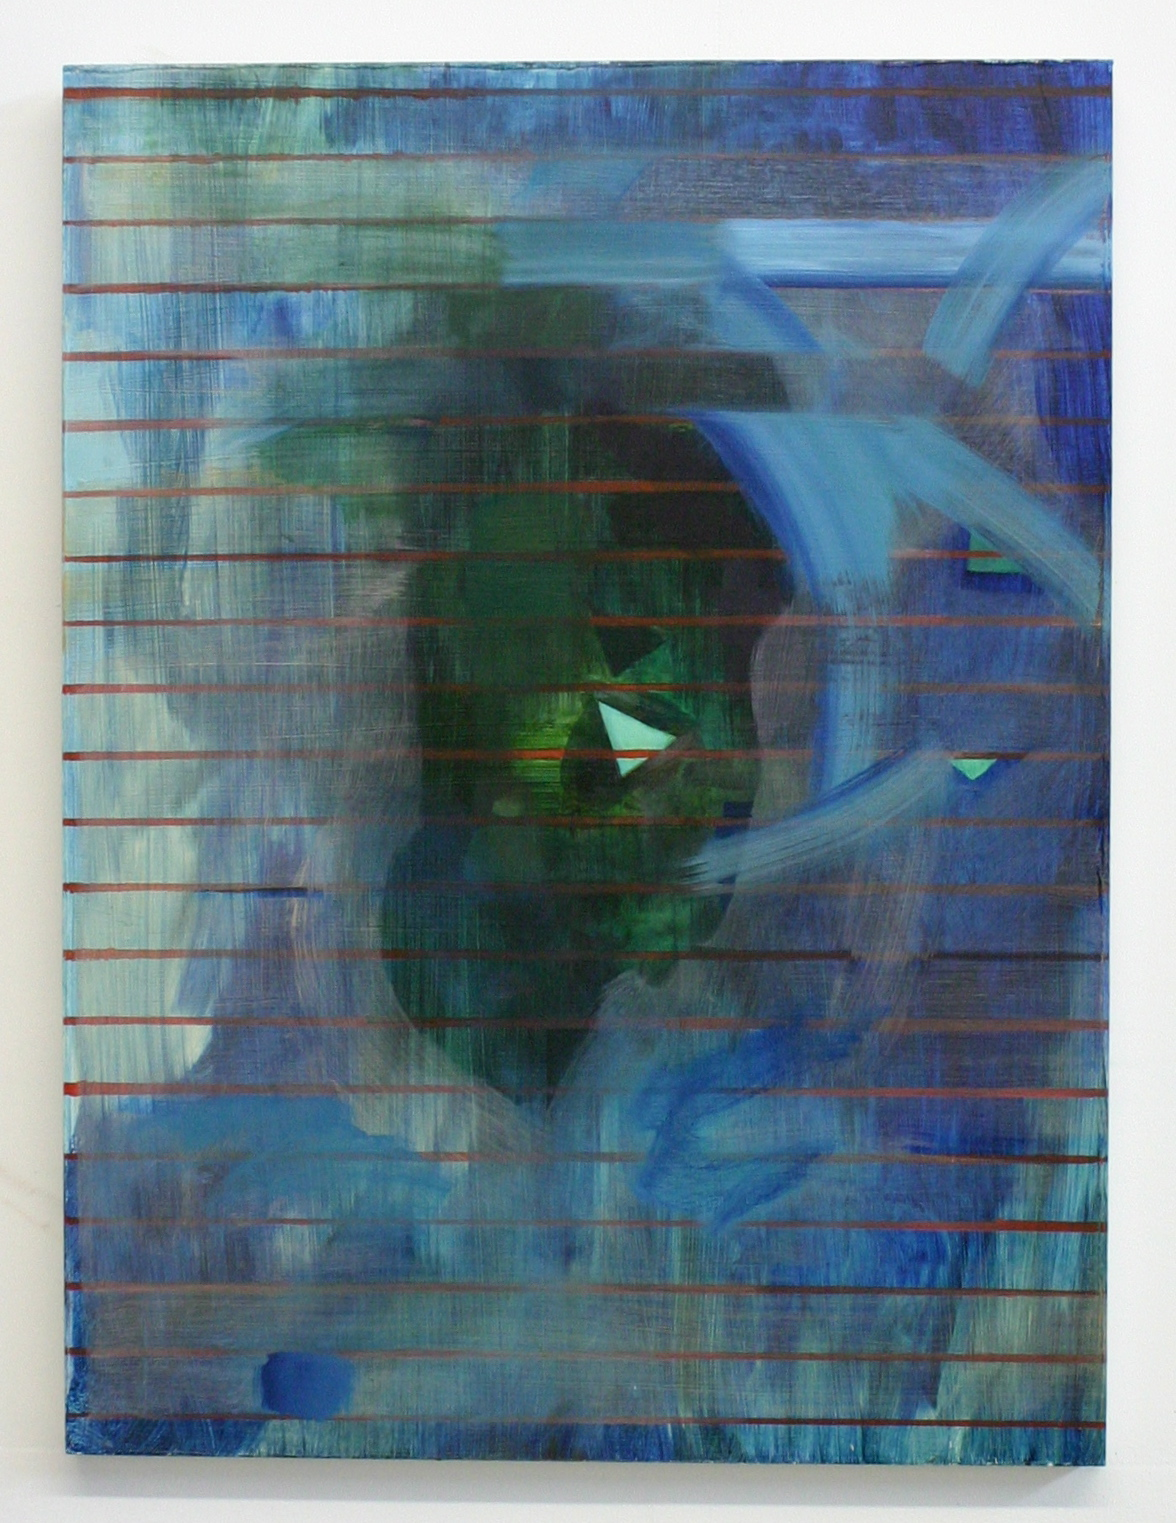 Straits, 2012, oil on wood panel, 24 x 18 inches